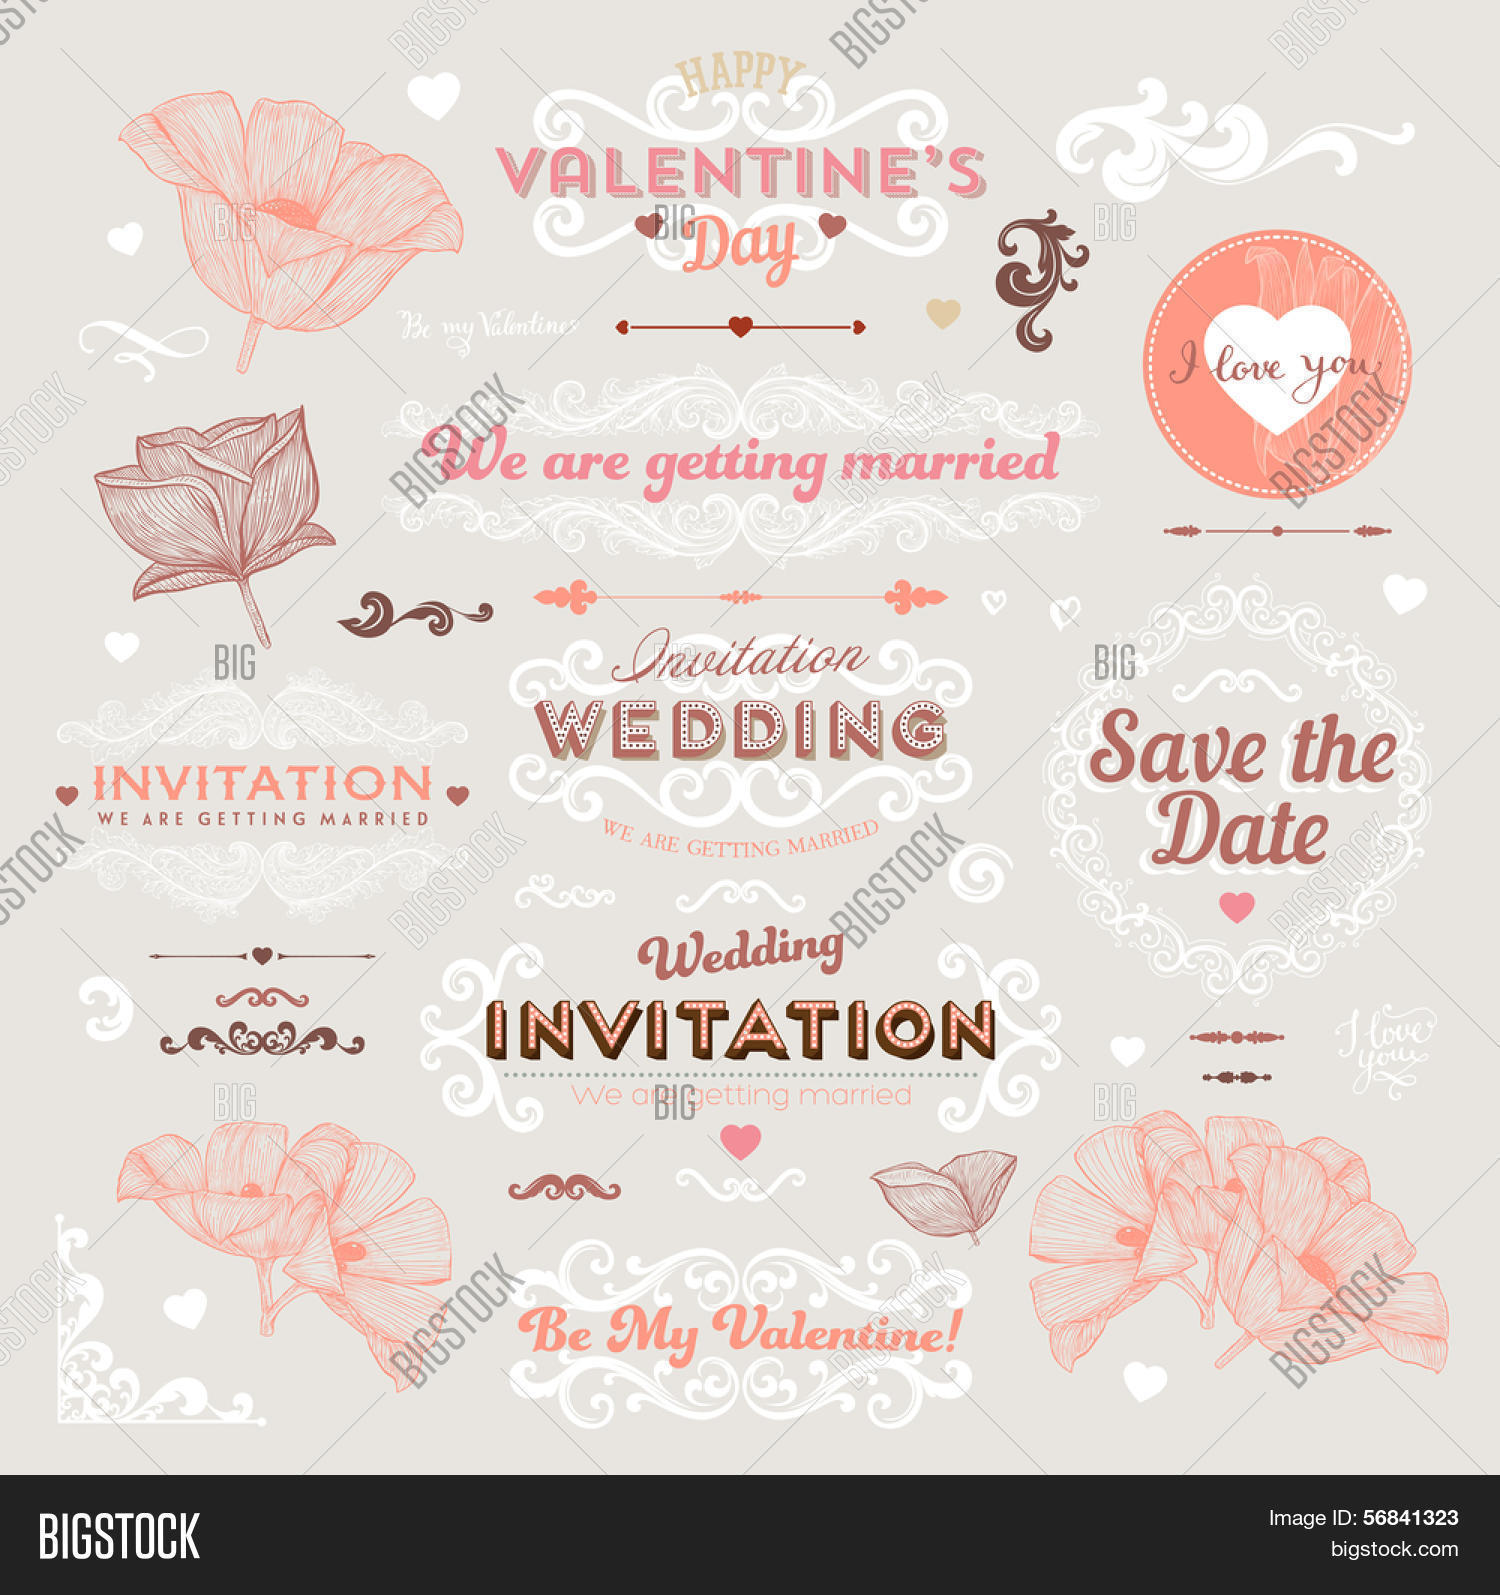 Valentine's Day Vector & Photo (Free Trial) | Bigstock